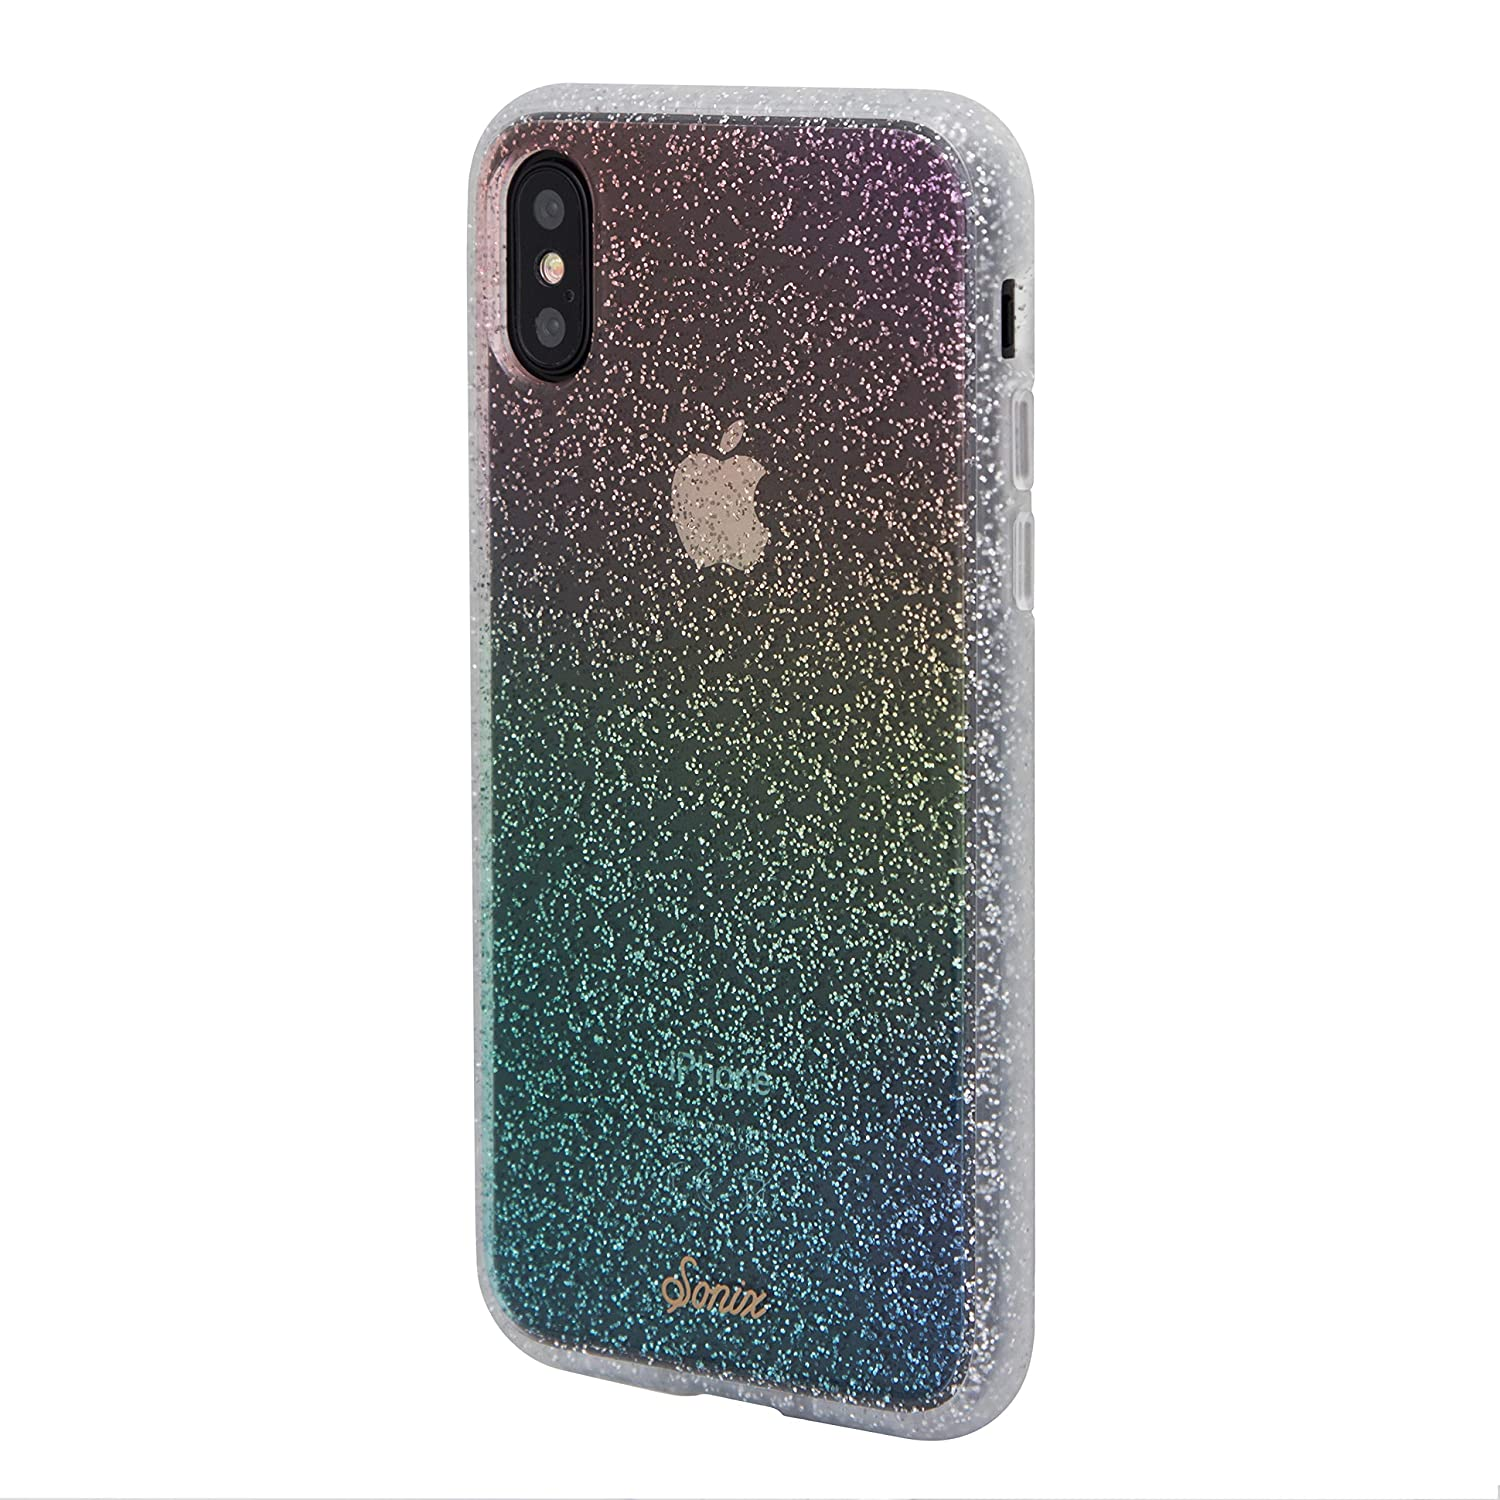 reputable site 8cad2 ebc9a iPhone Xs, iPhone X, Sonix Rainbow Glitter Cell Phone Case [Military Drop  Test Certified] Sonix Clear Coat Series for Apple (5.8